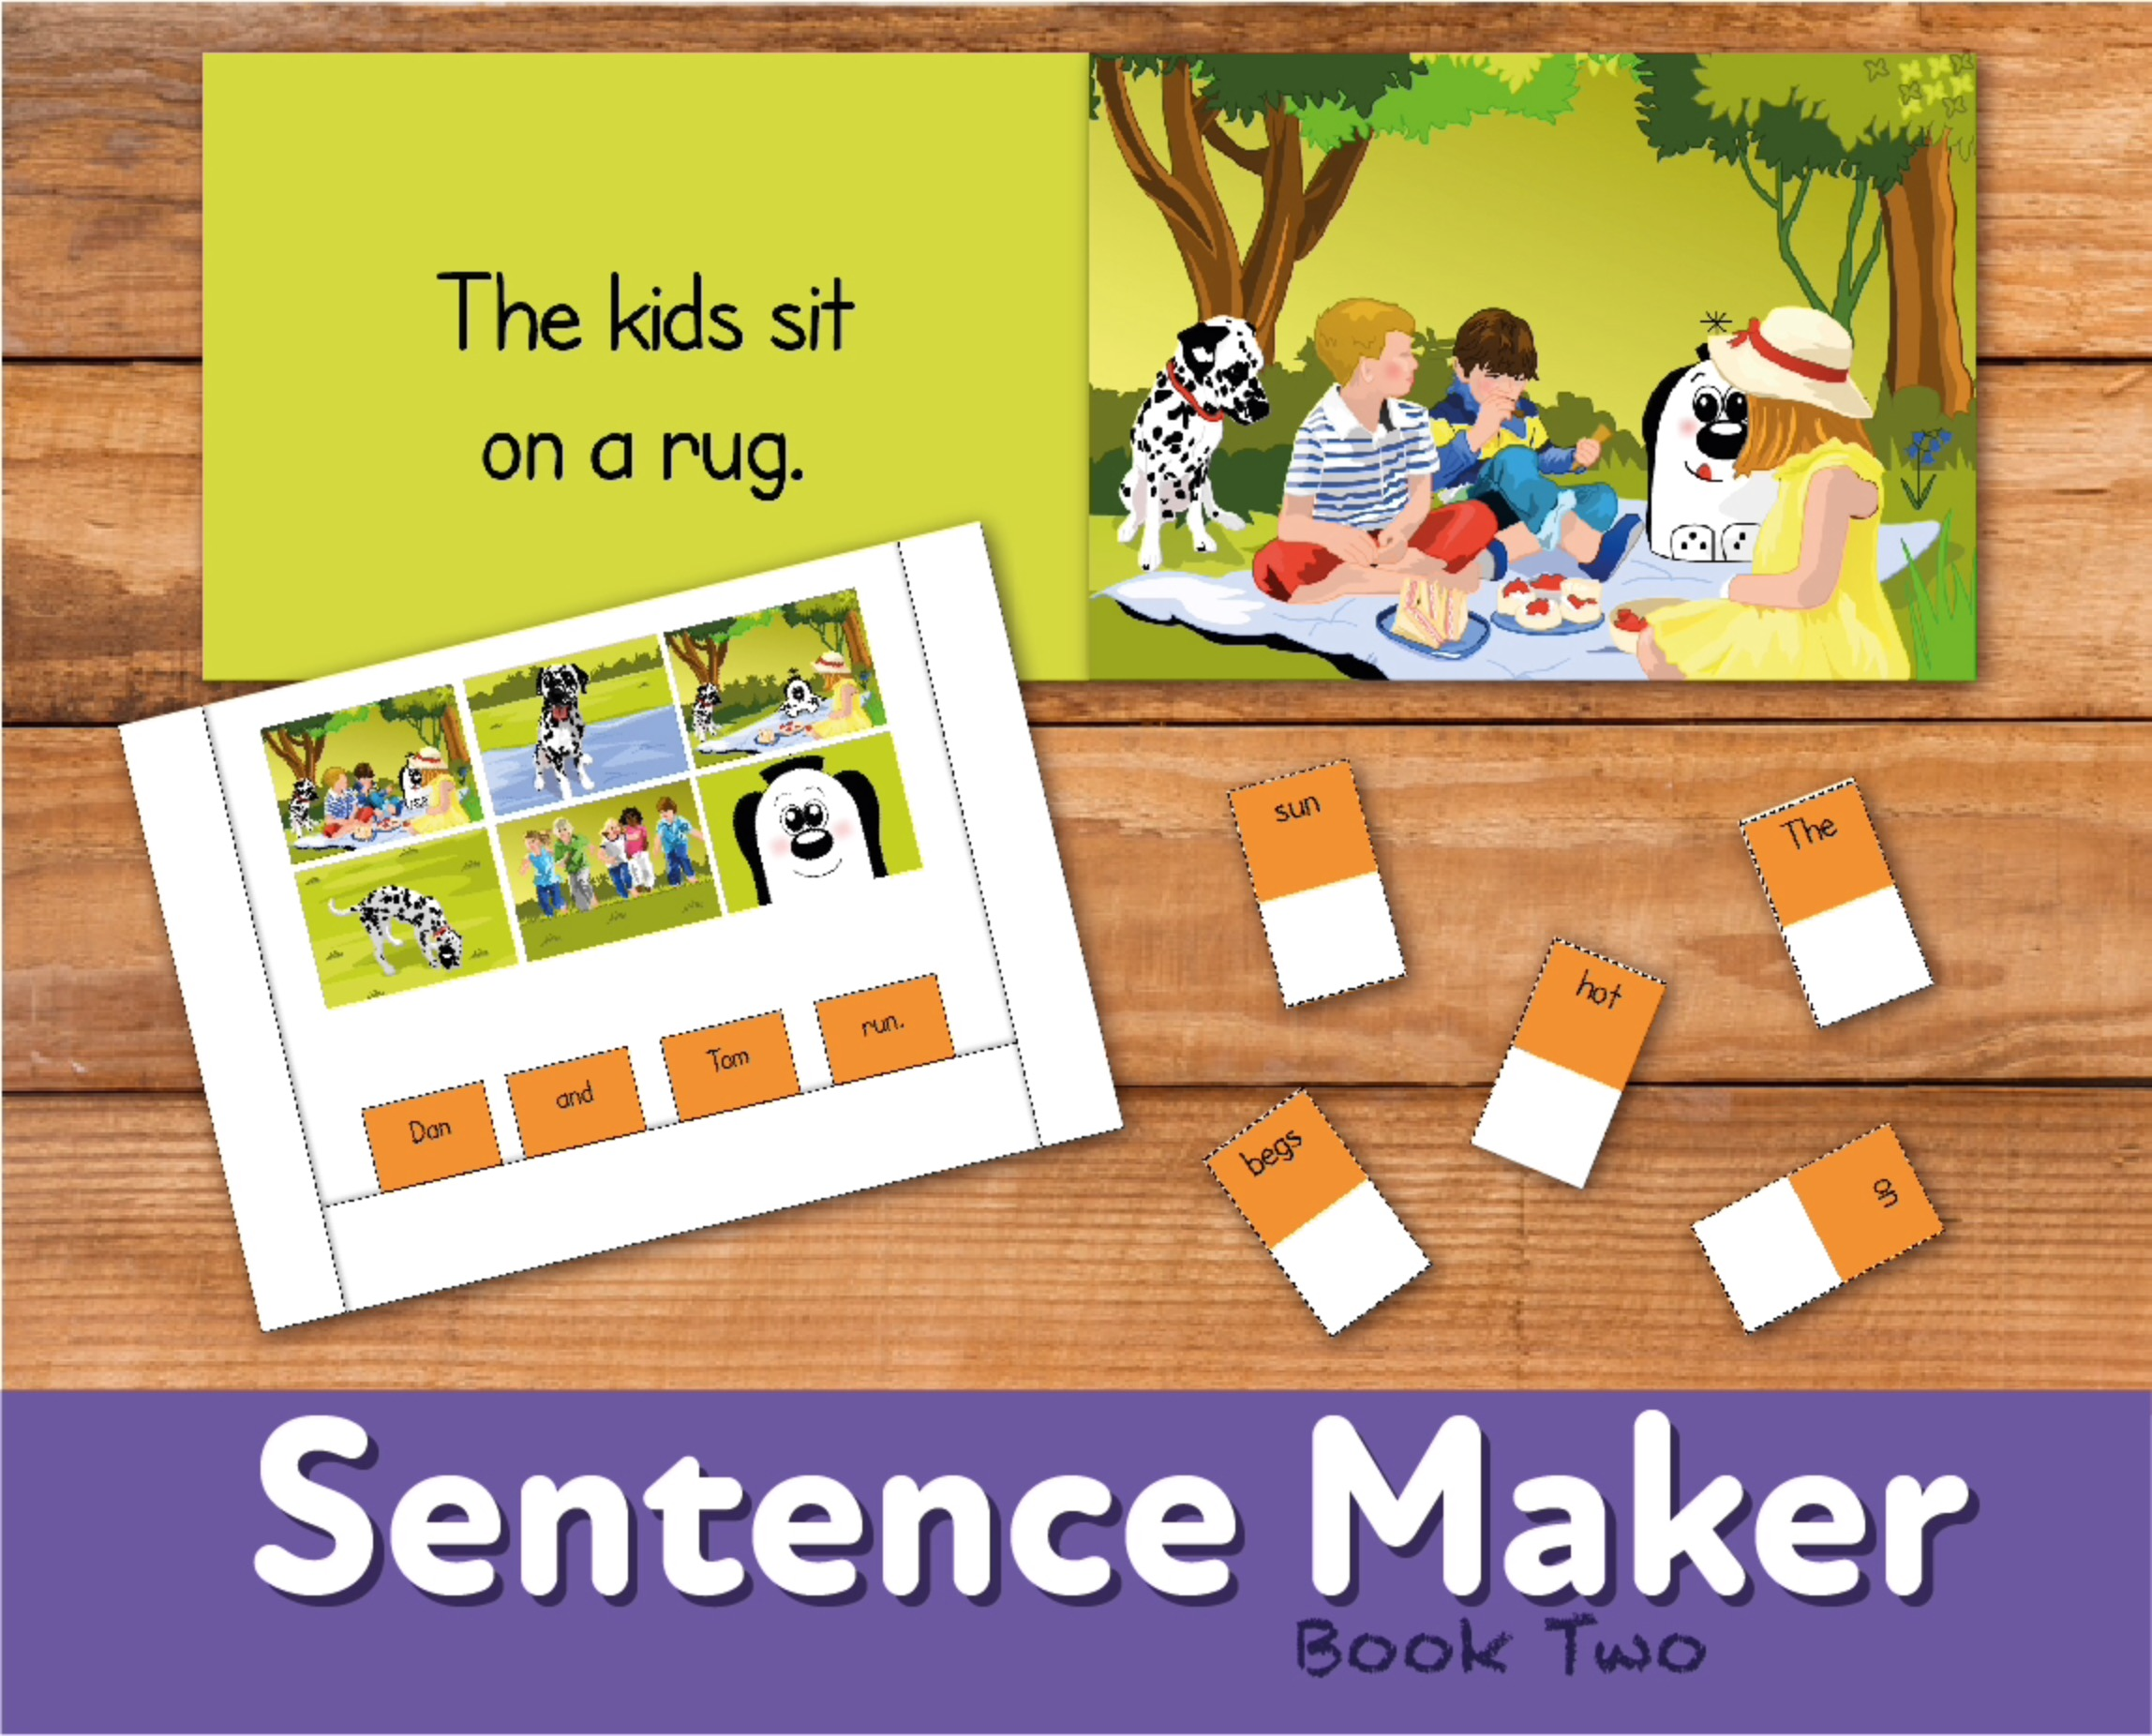 Make Sentences With The Sentence Maker: Book 2